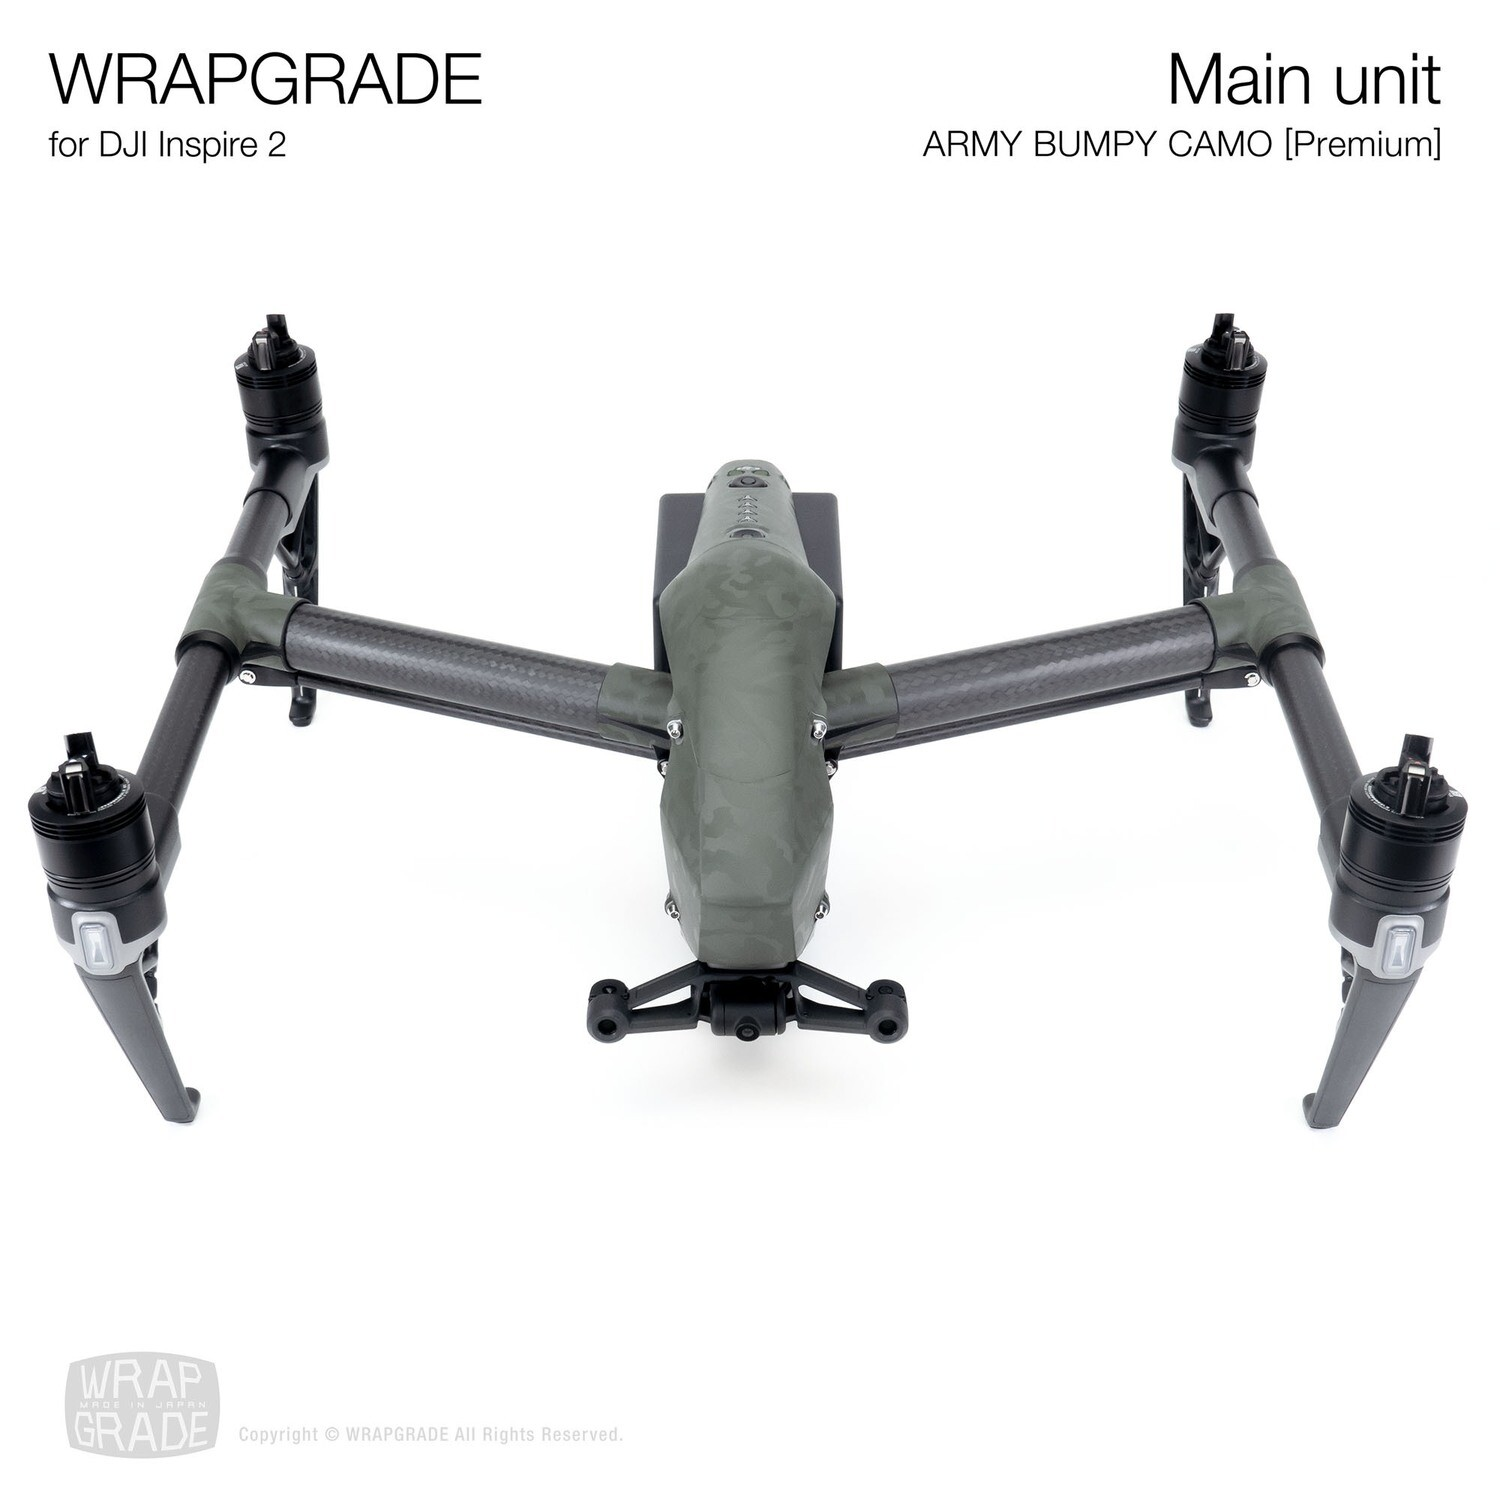 WRAPGRADE for DJI Inspire 2 | Main Unit (ARMY BUMPY CAMO)